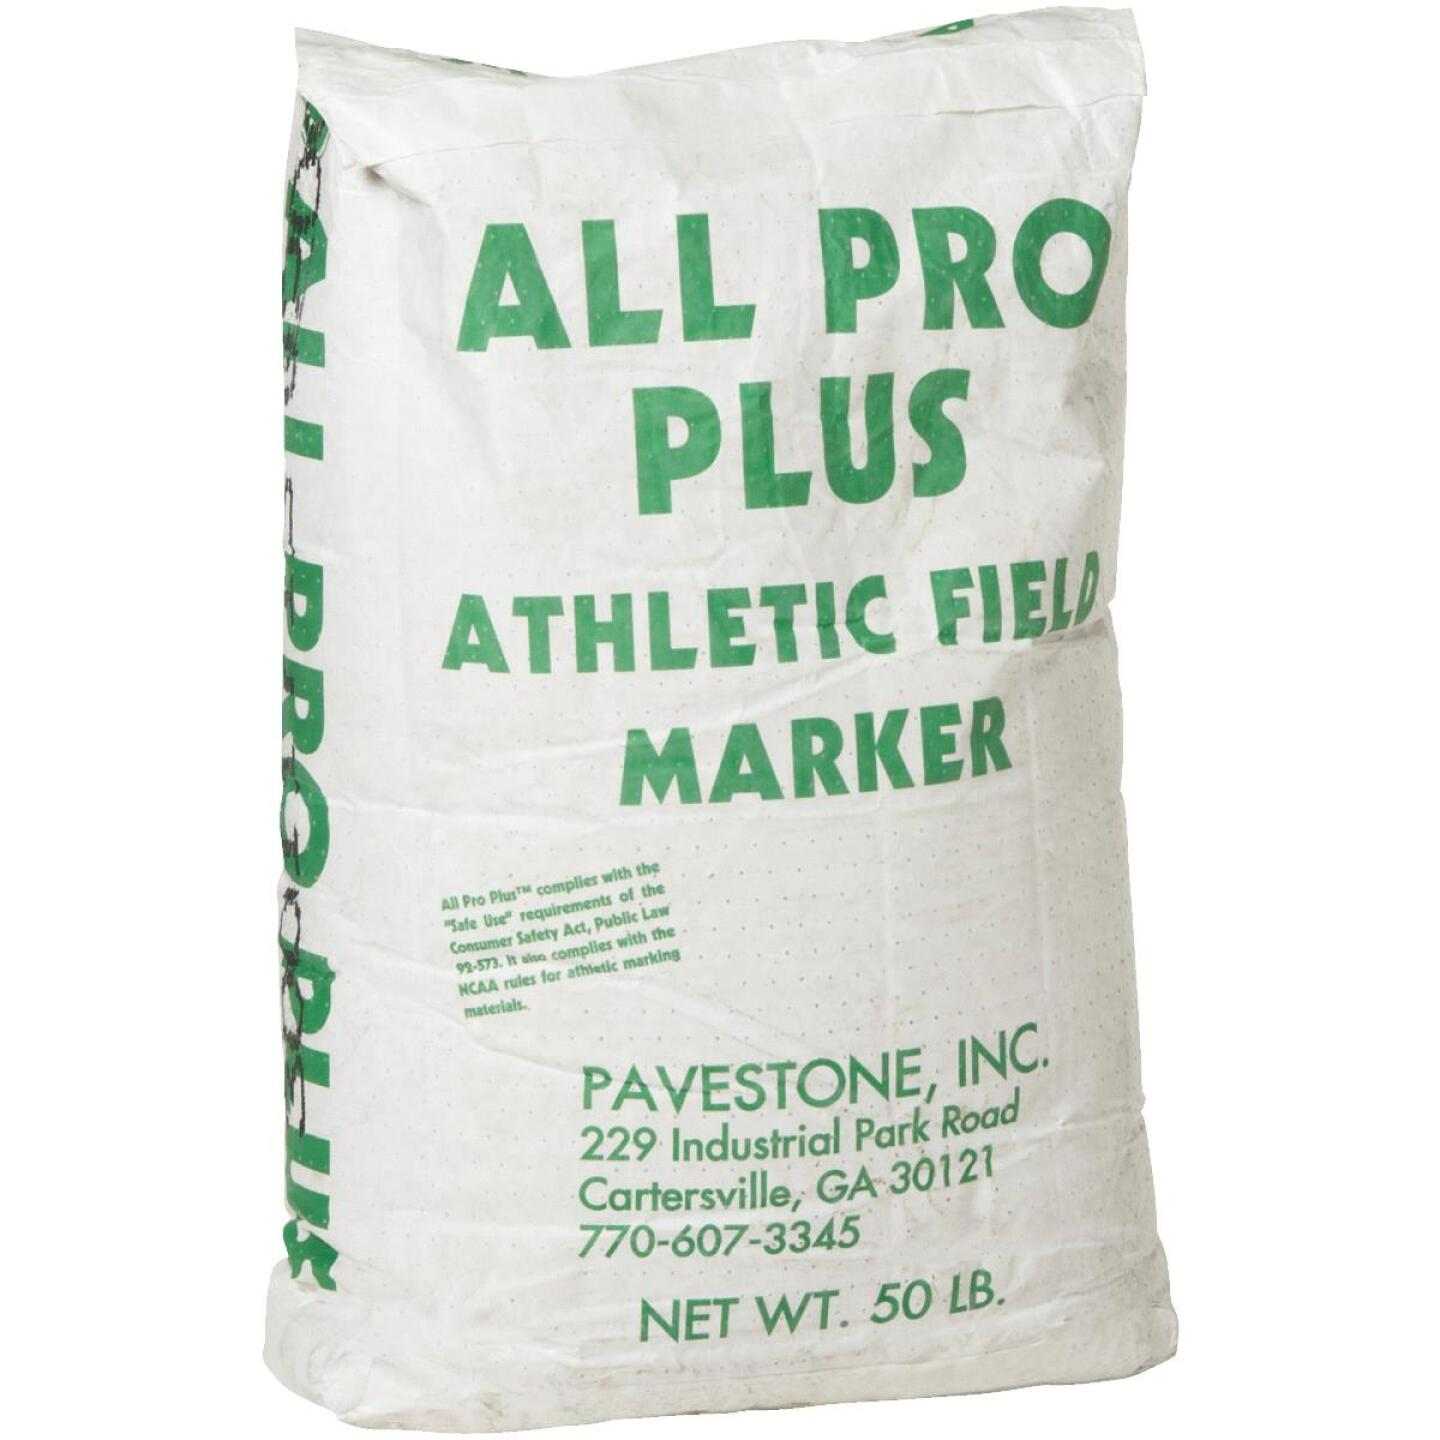 All Pro Plus 50 Lb. Field Marking Lime Image 1